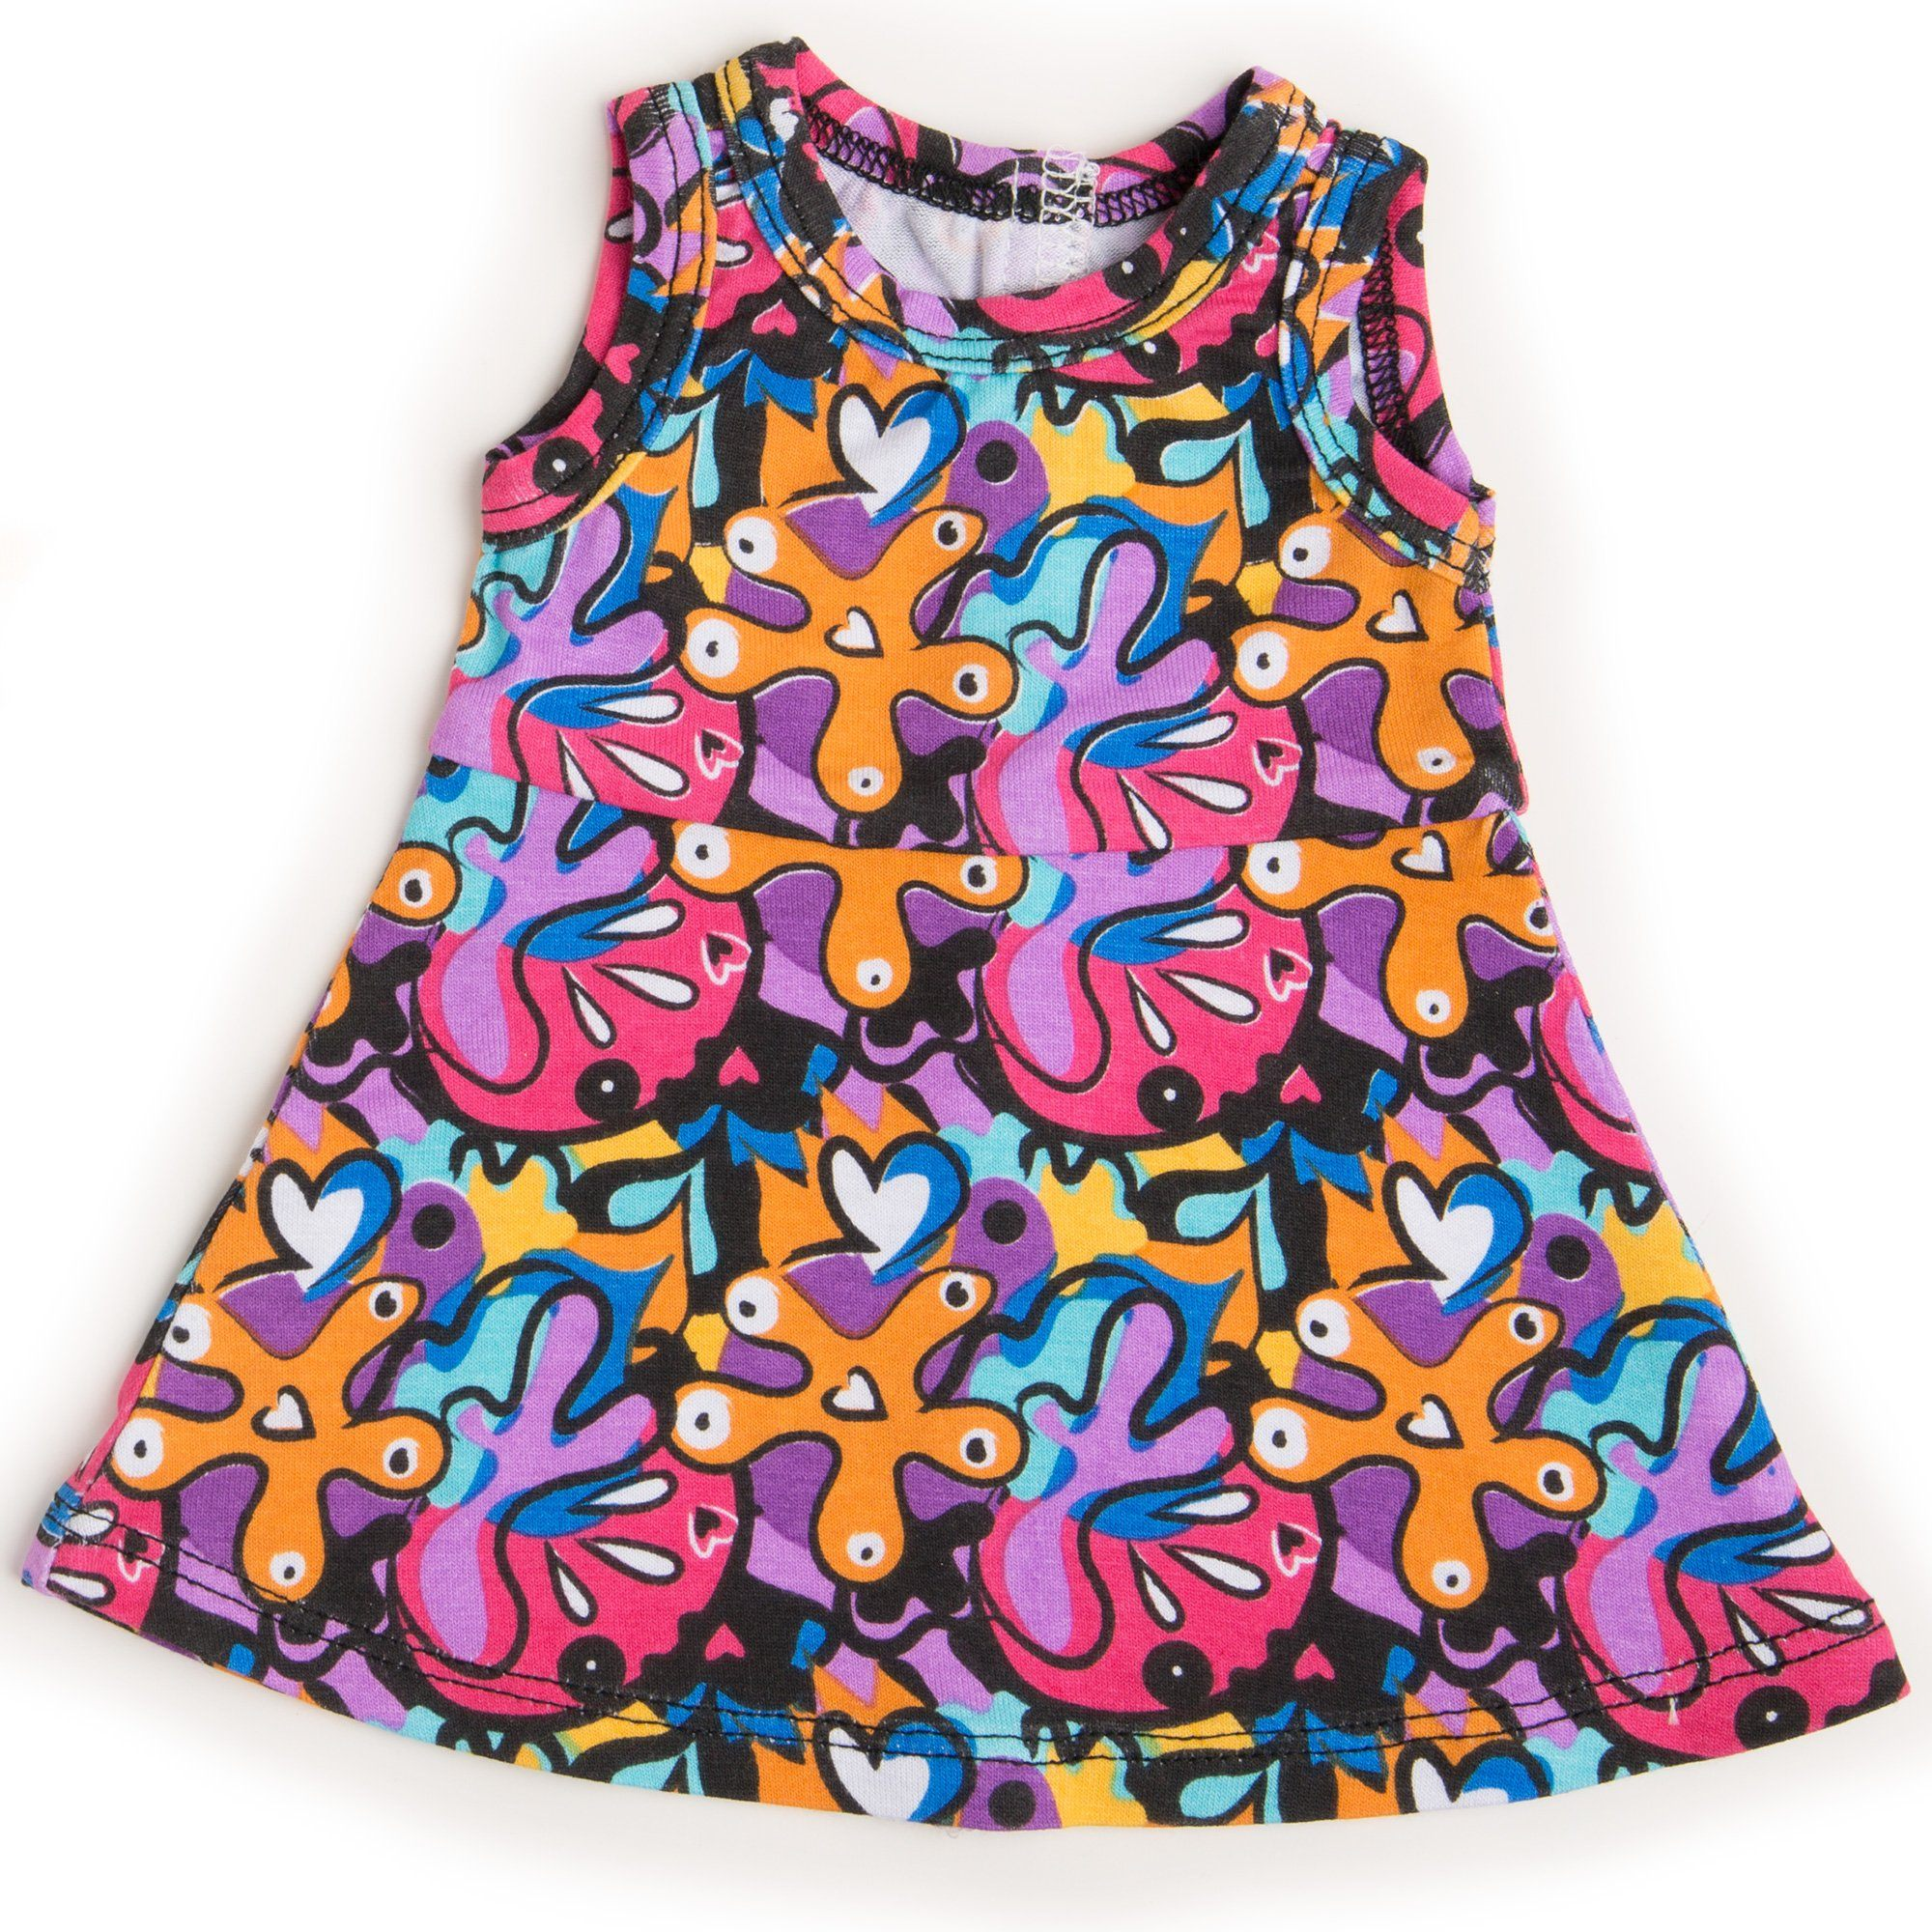 Maplelea 18 inch doll Alexi starter outfit - graffiti print dress